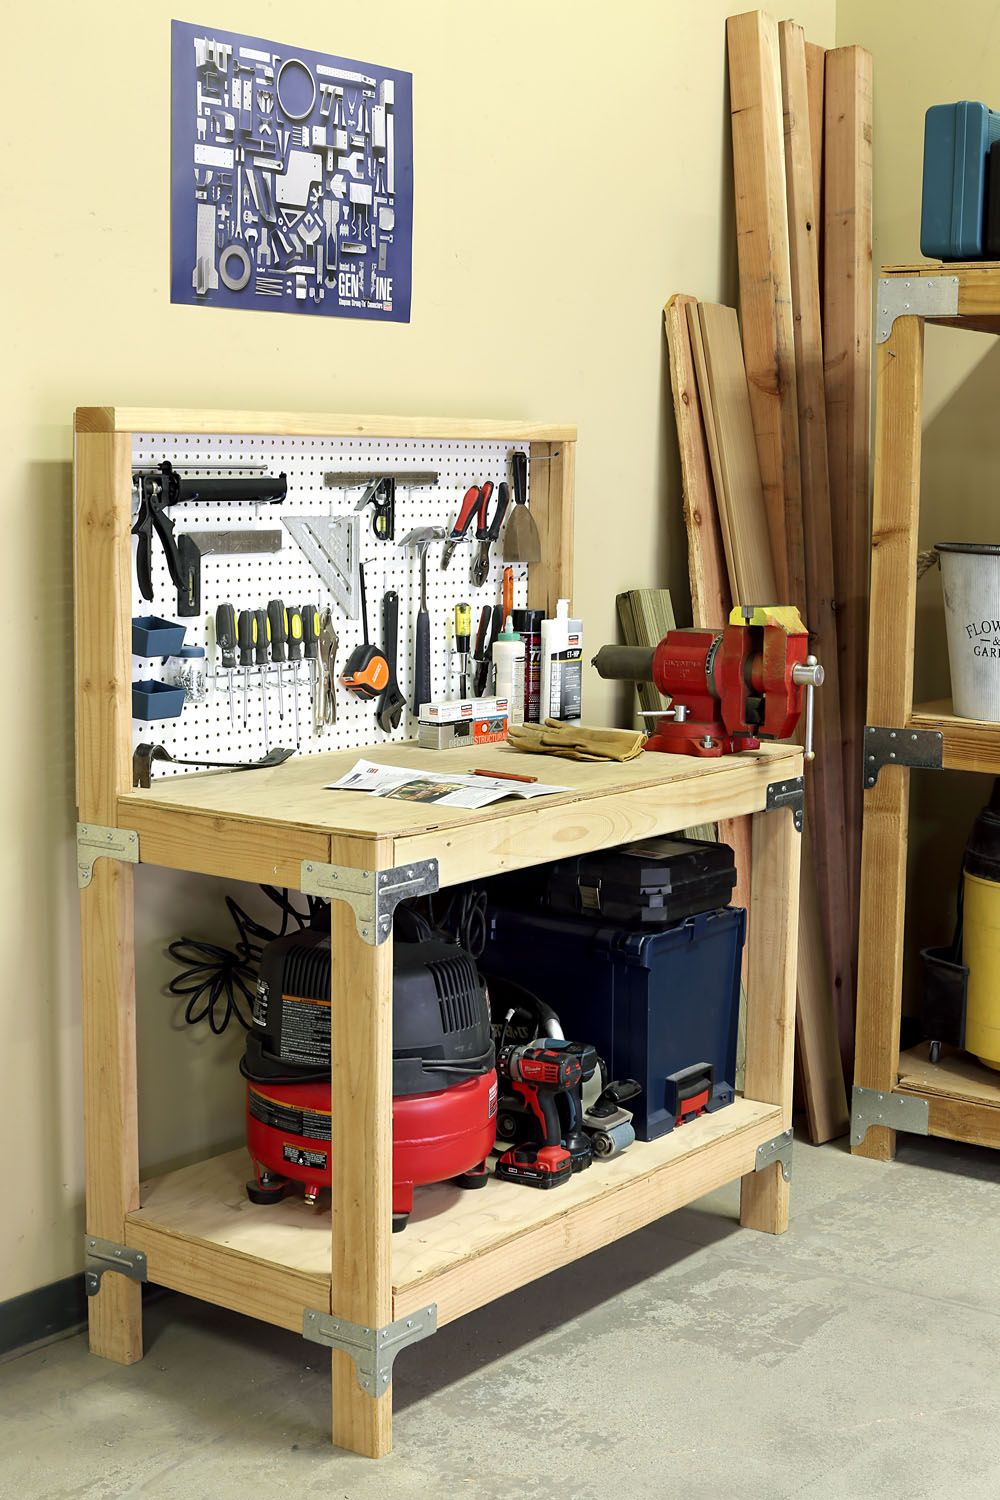 Diy Workbench Diy Storage Workbench Diy Storage Shelves Diy